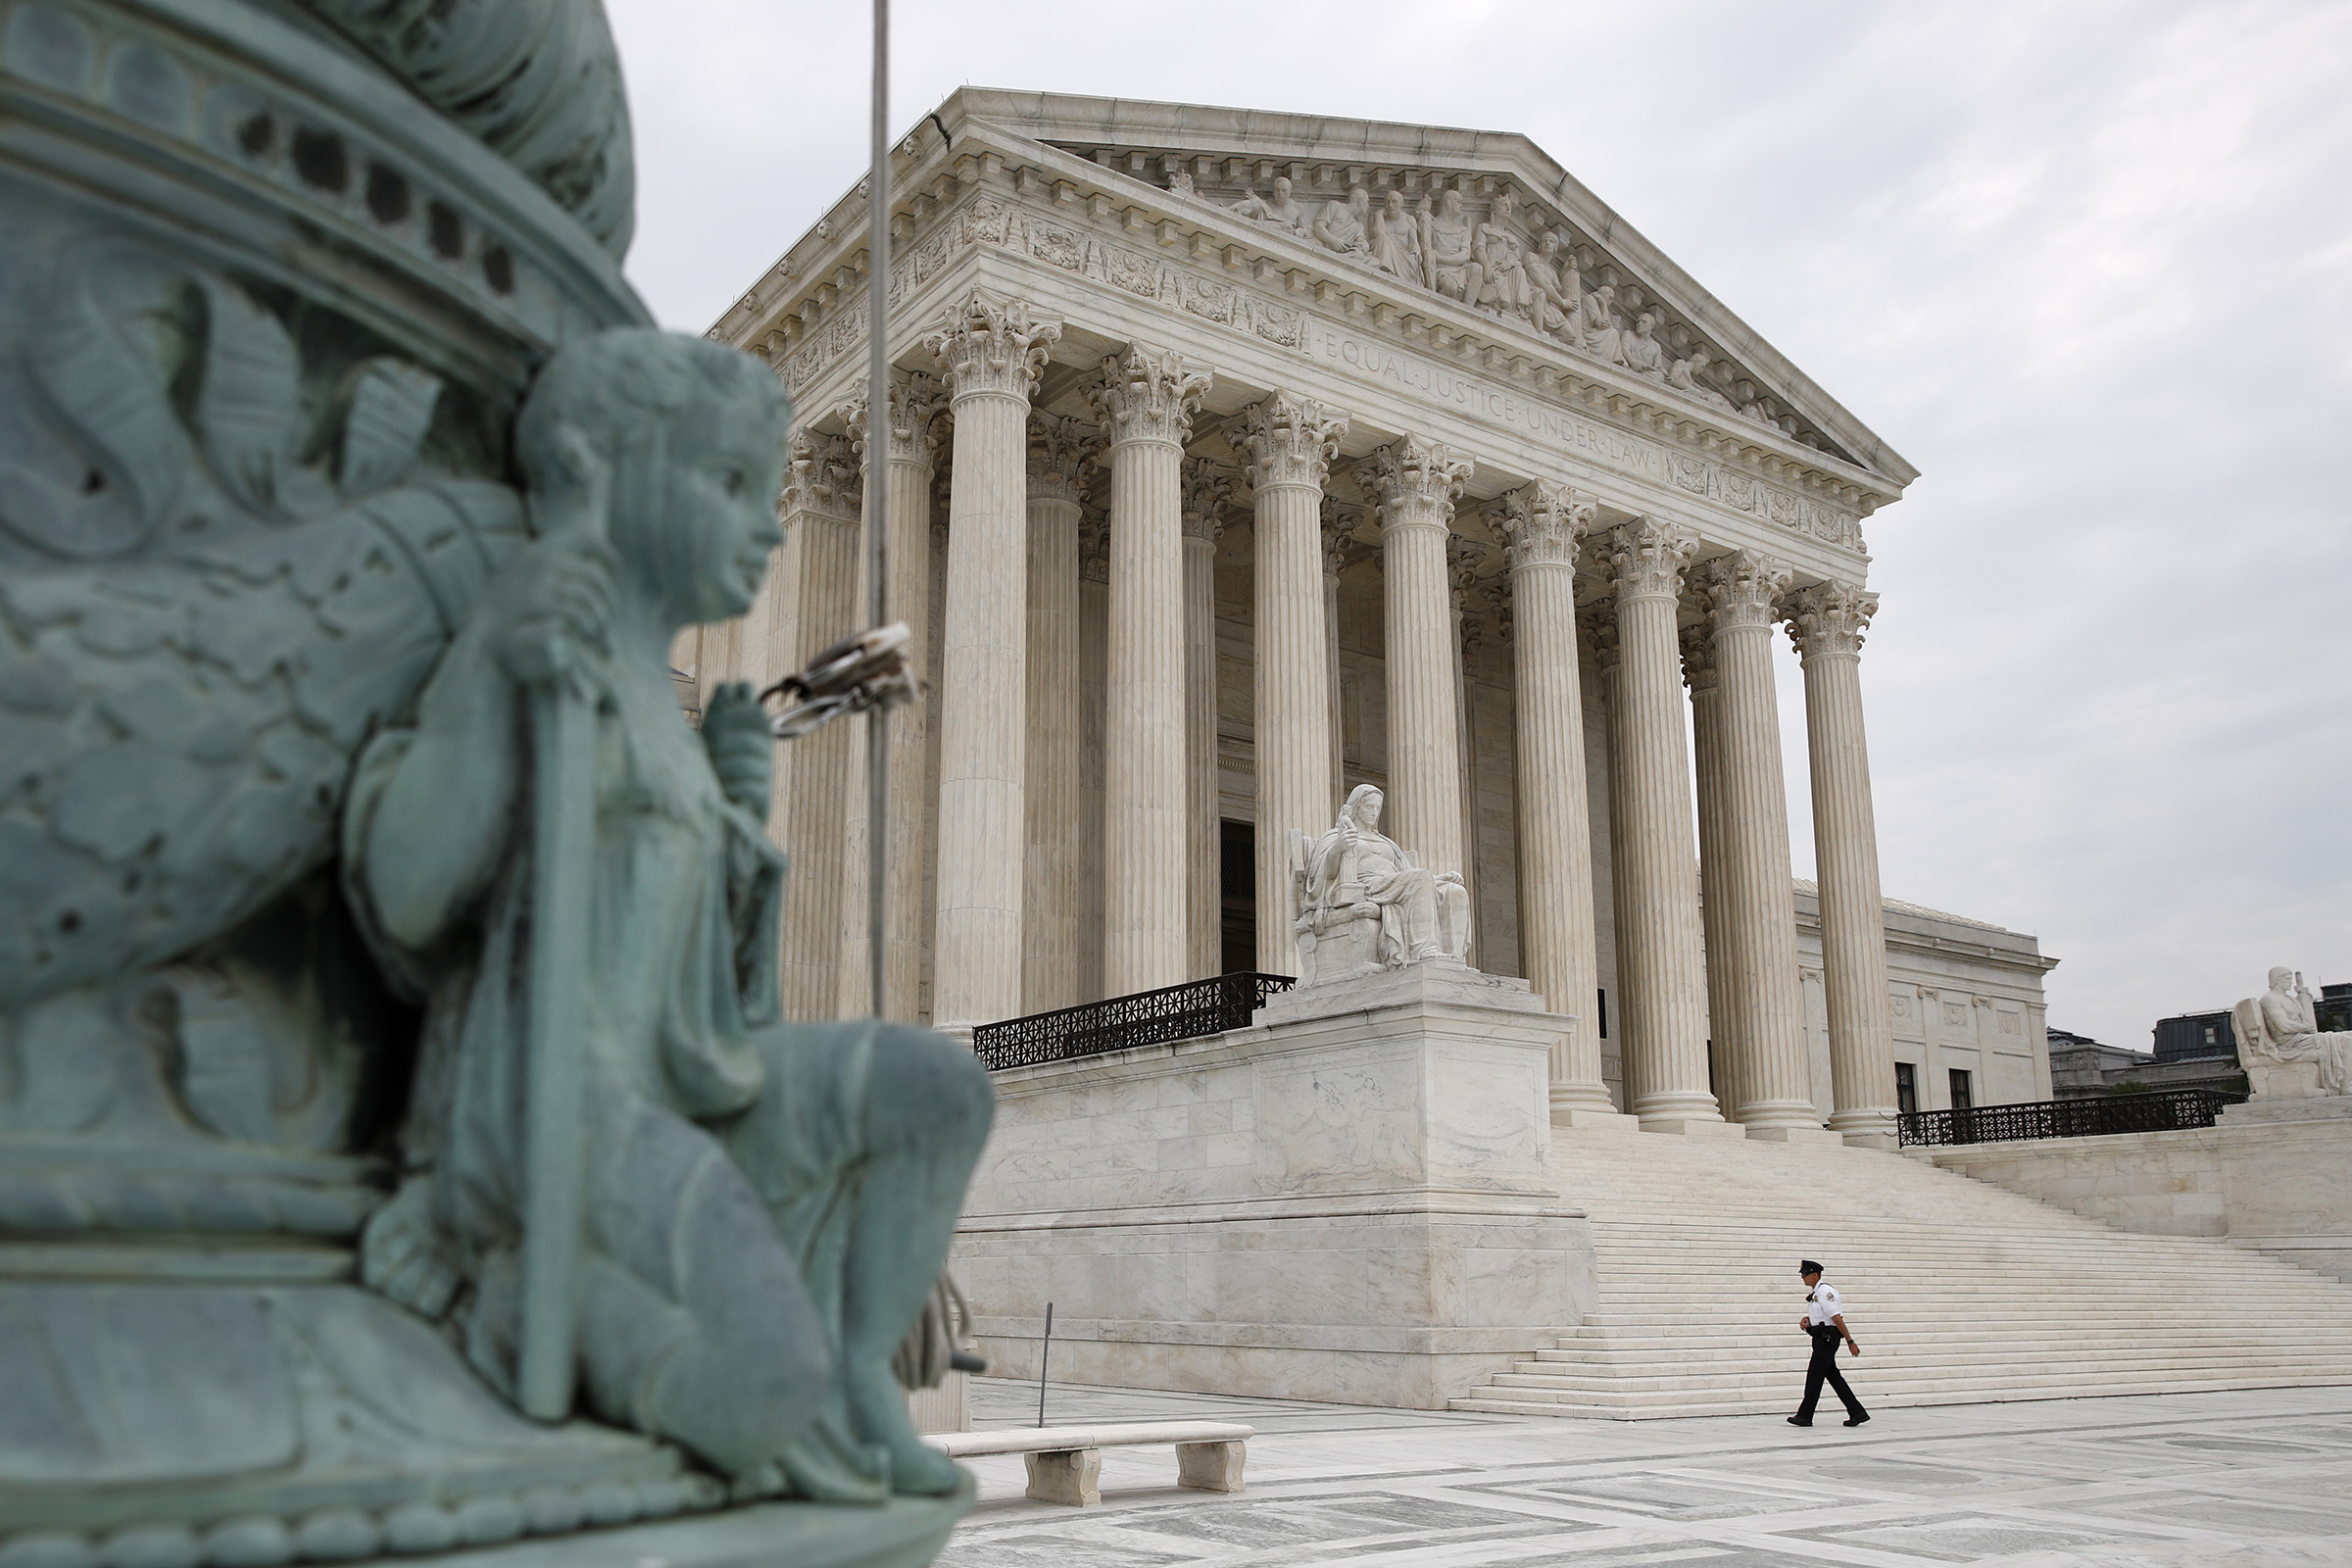 A police officer walks outside the Supreme Court on Capitol Hill in Washington, on July 6, 2020.